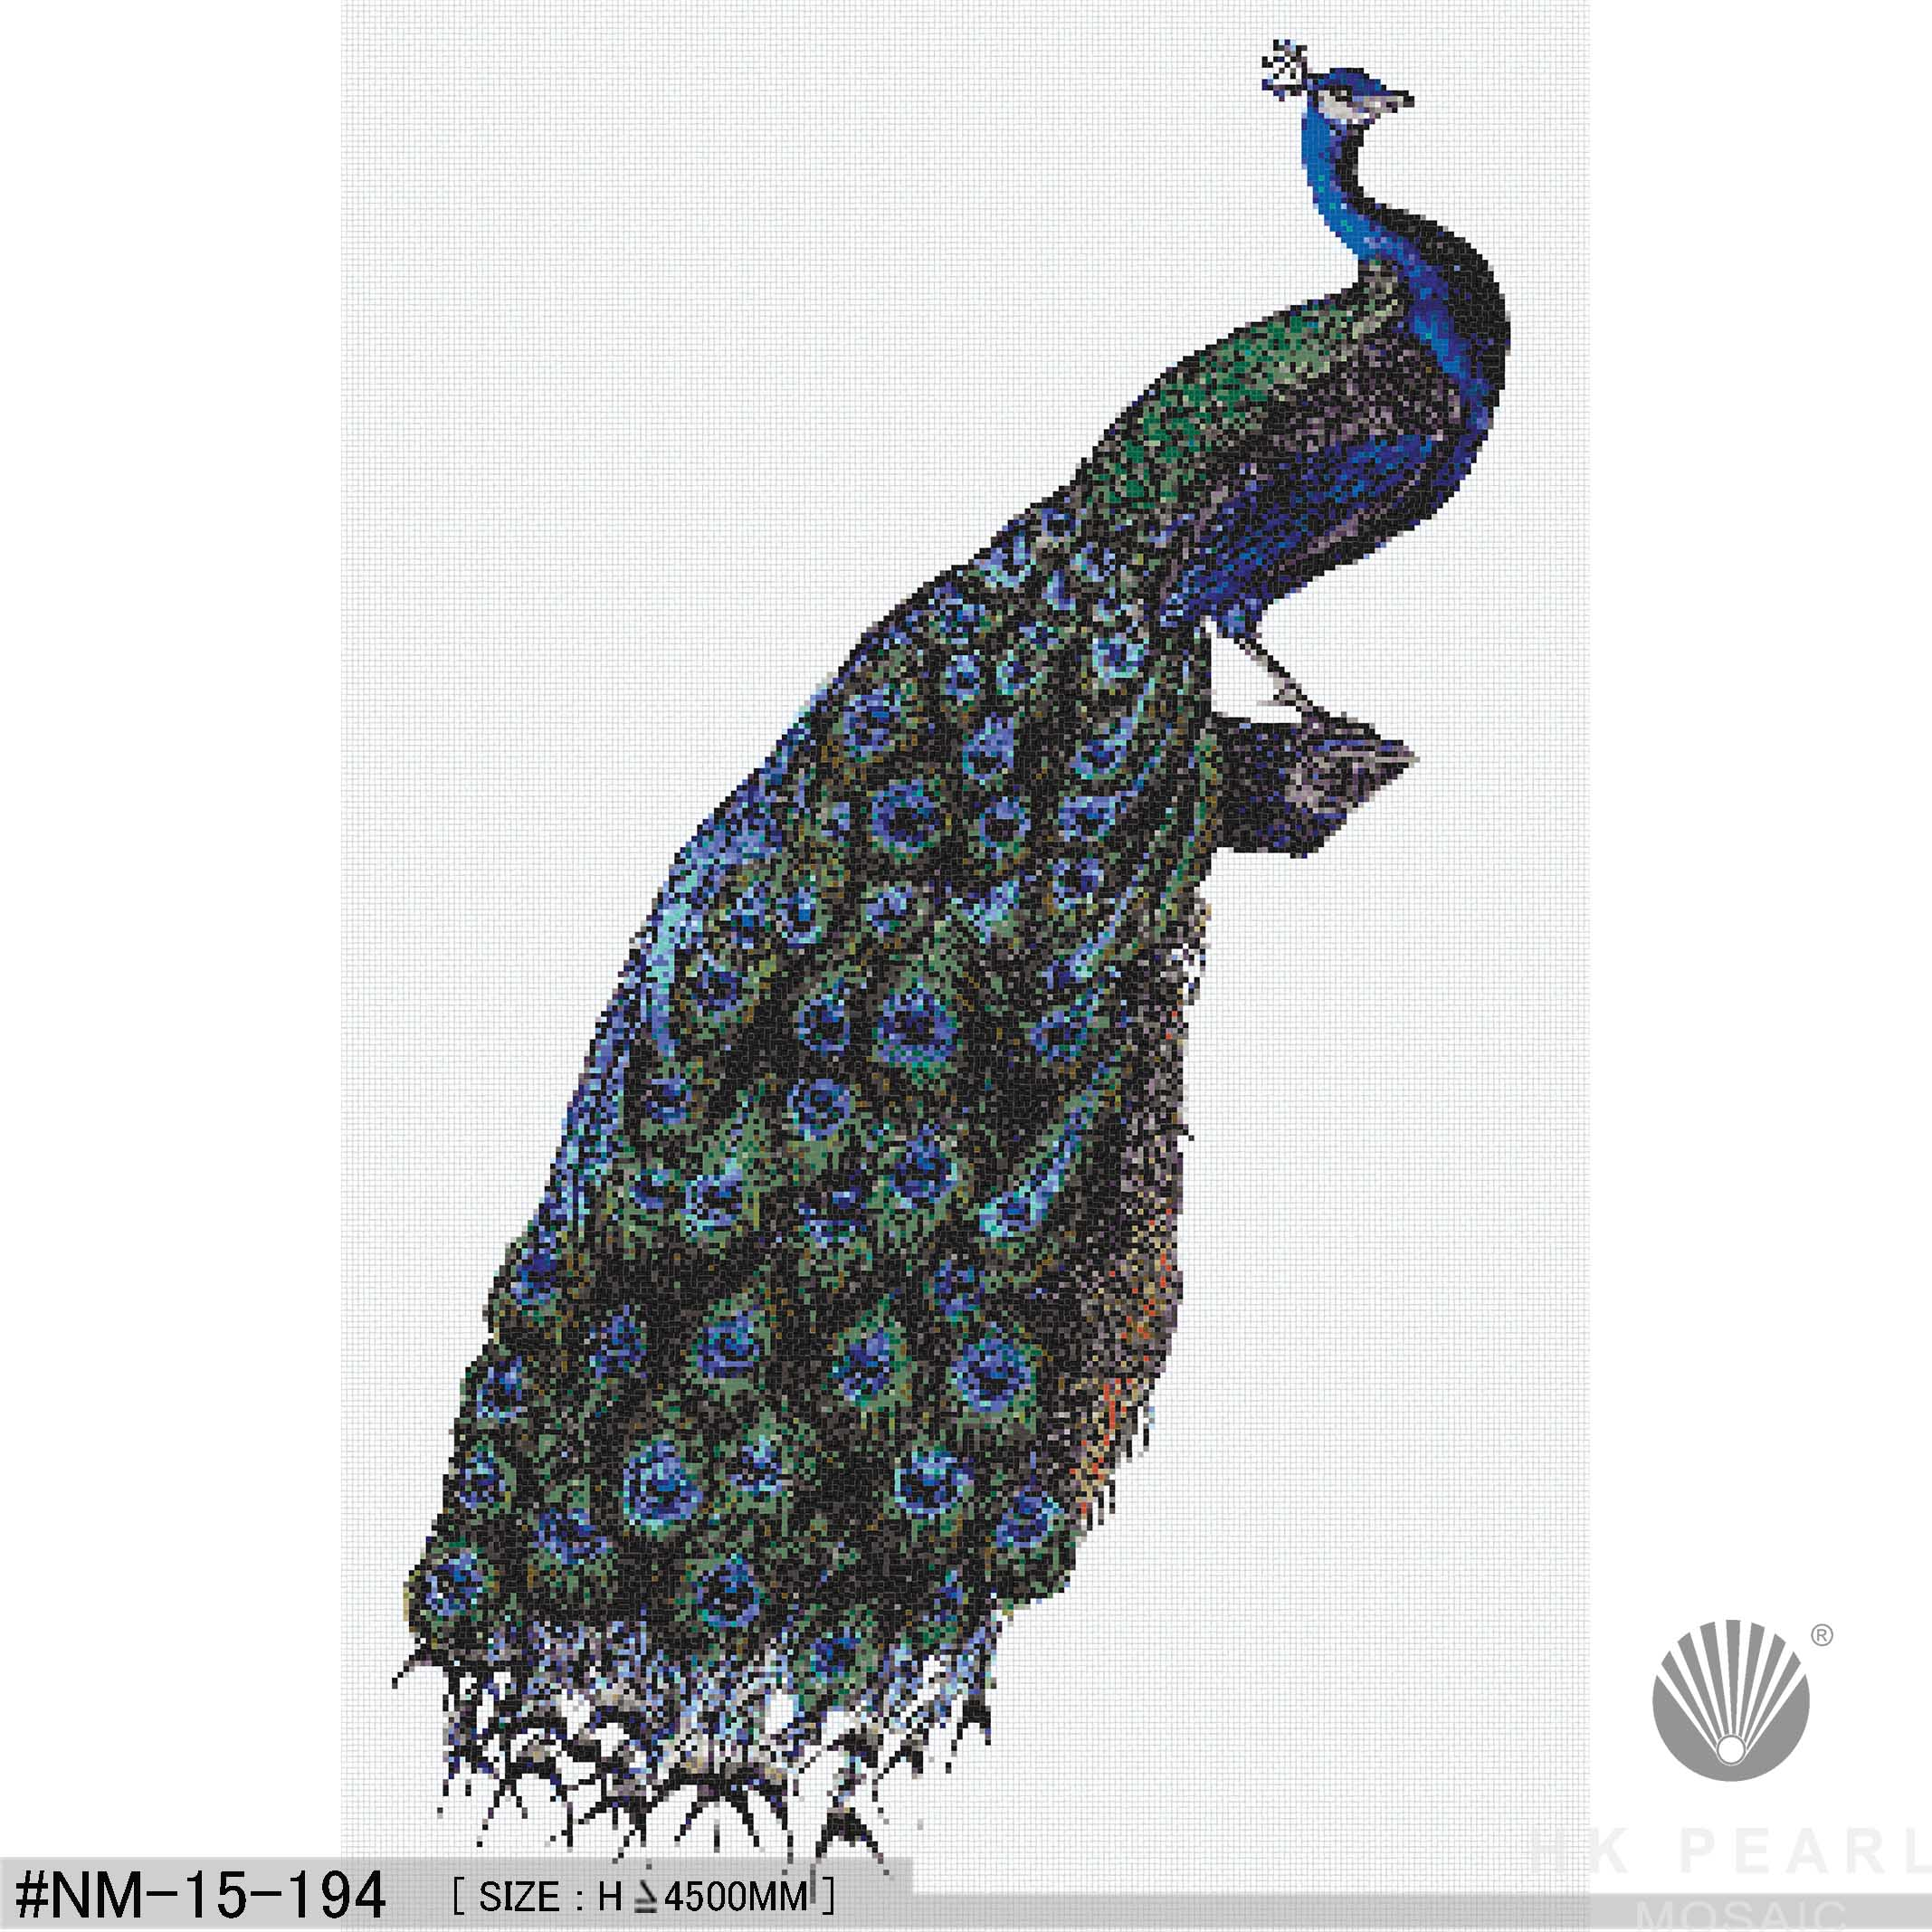 Beautiful Blue Peacock Glass Mosaic Tile Art Mural